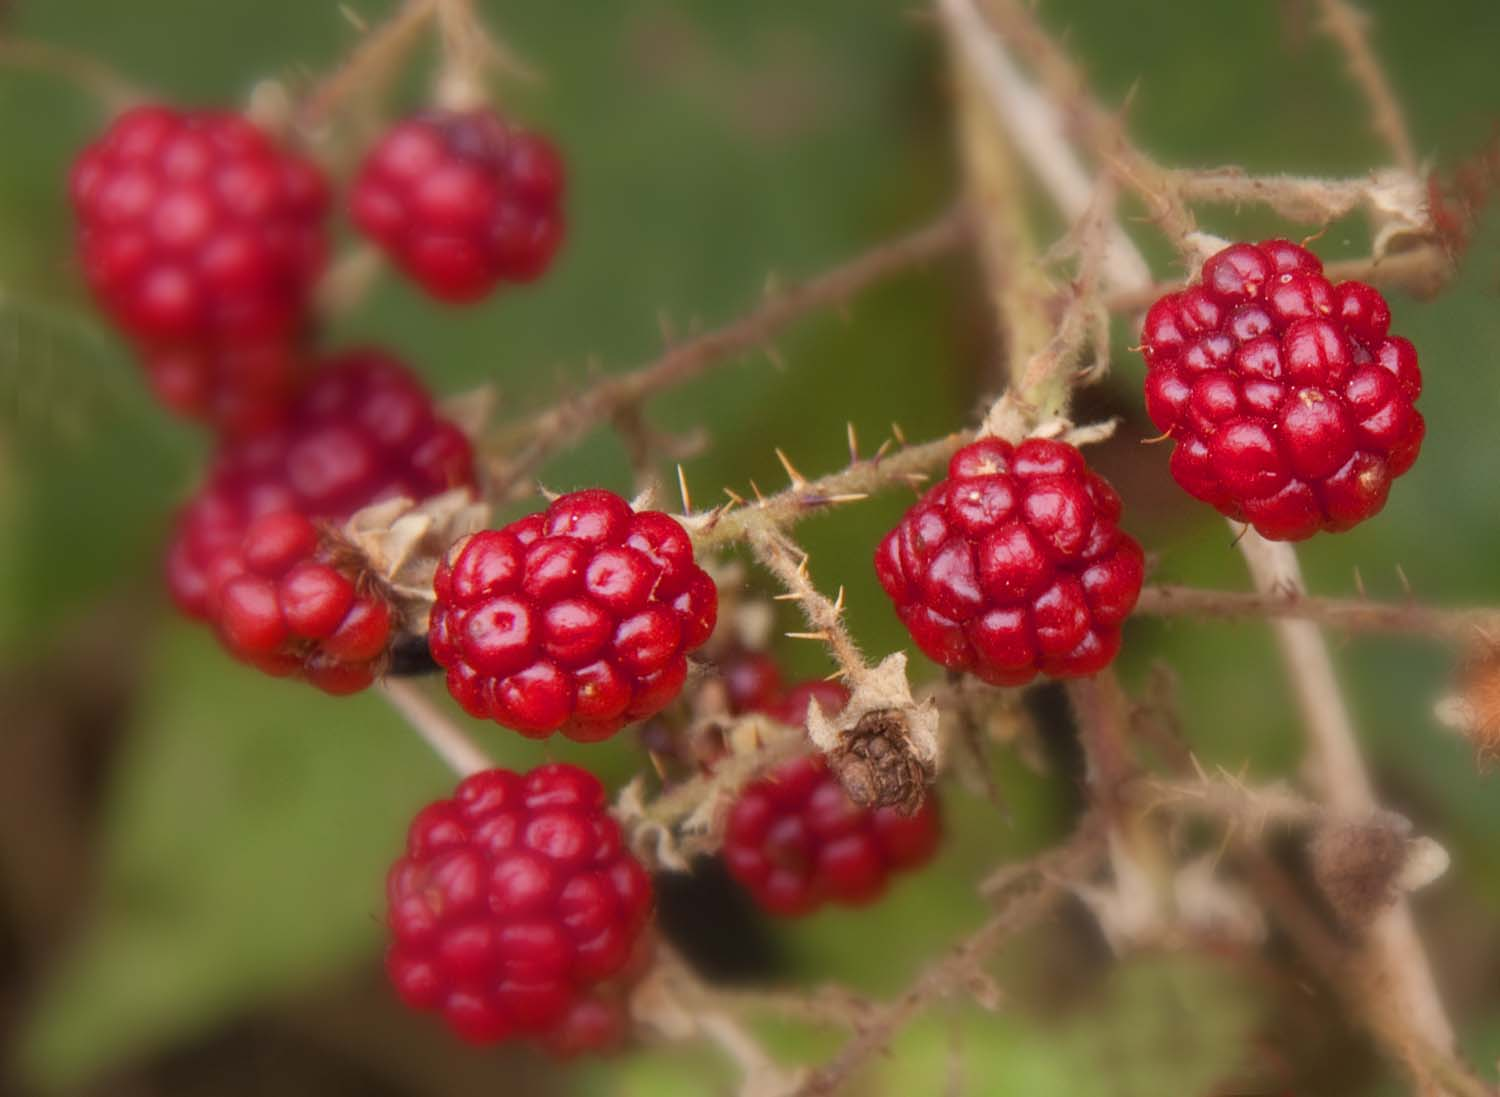 Northwich,Lostock,Galam,Gralam,village,town,england,cheshire,chester,canal,canalside,berry,berries,red,blackbry,blackberry,wild,flowers,weeds,thorns,autumn,bramble,brambles,thorny,HotpixOrgUK,365days,nature,natural,history,world,life,plant,bloom,flower,flores,blome,hotpix!